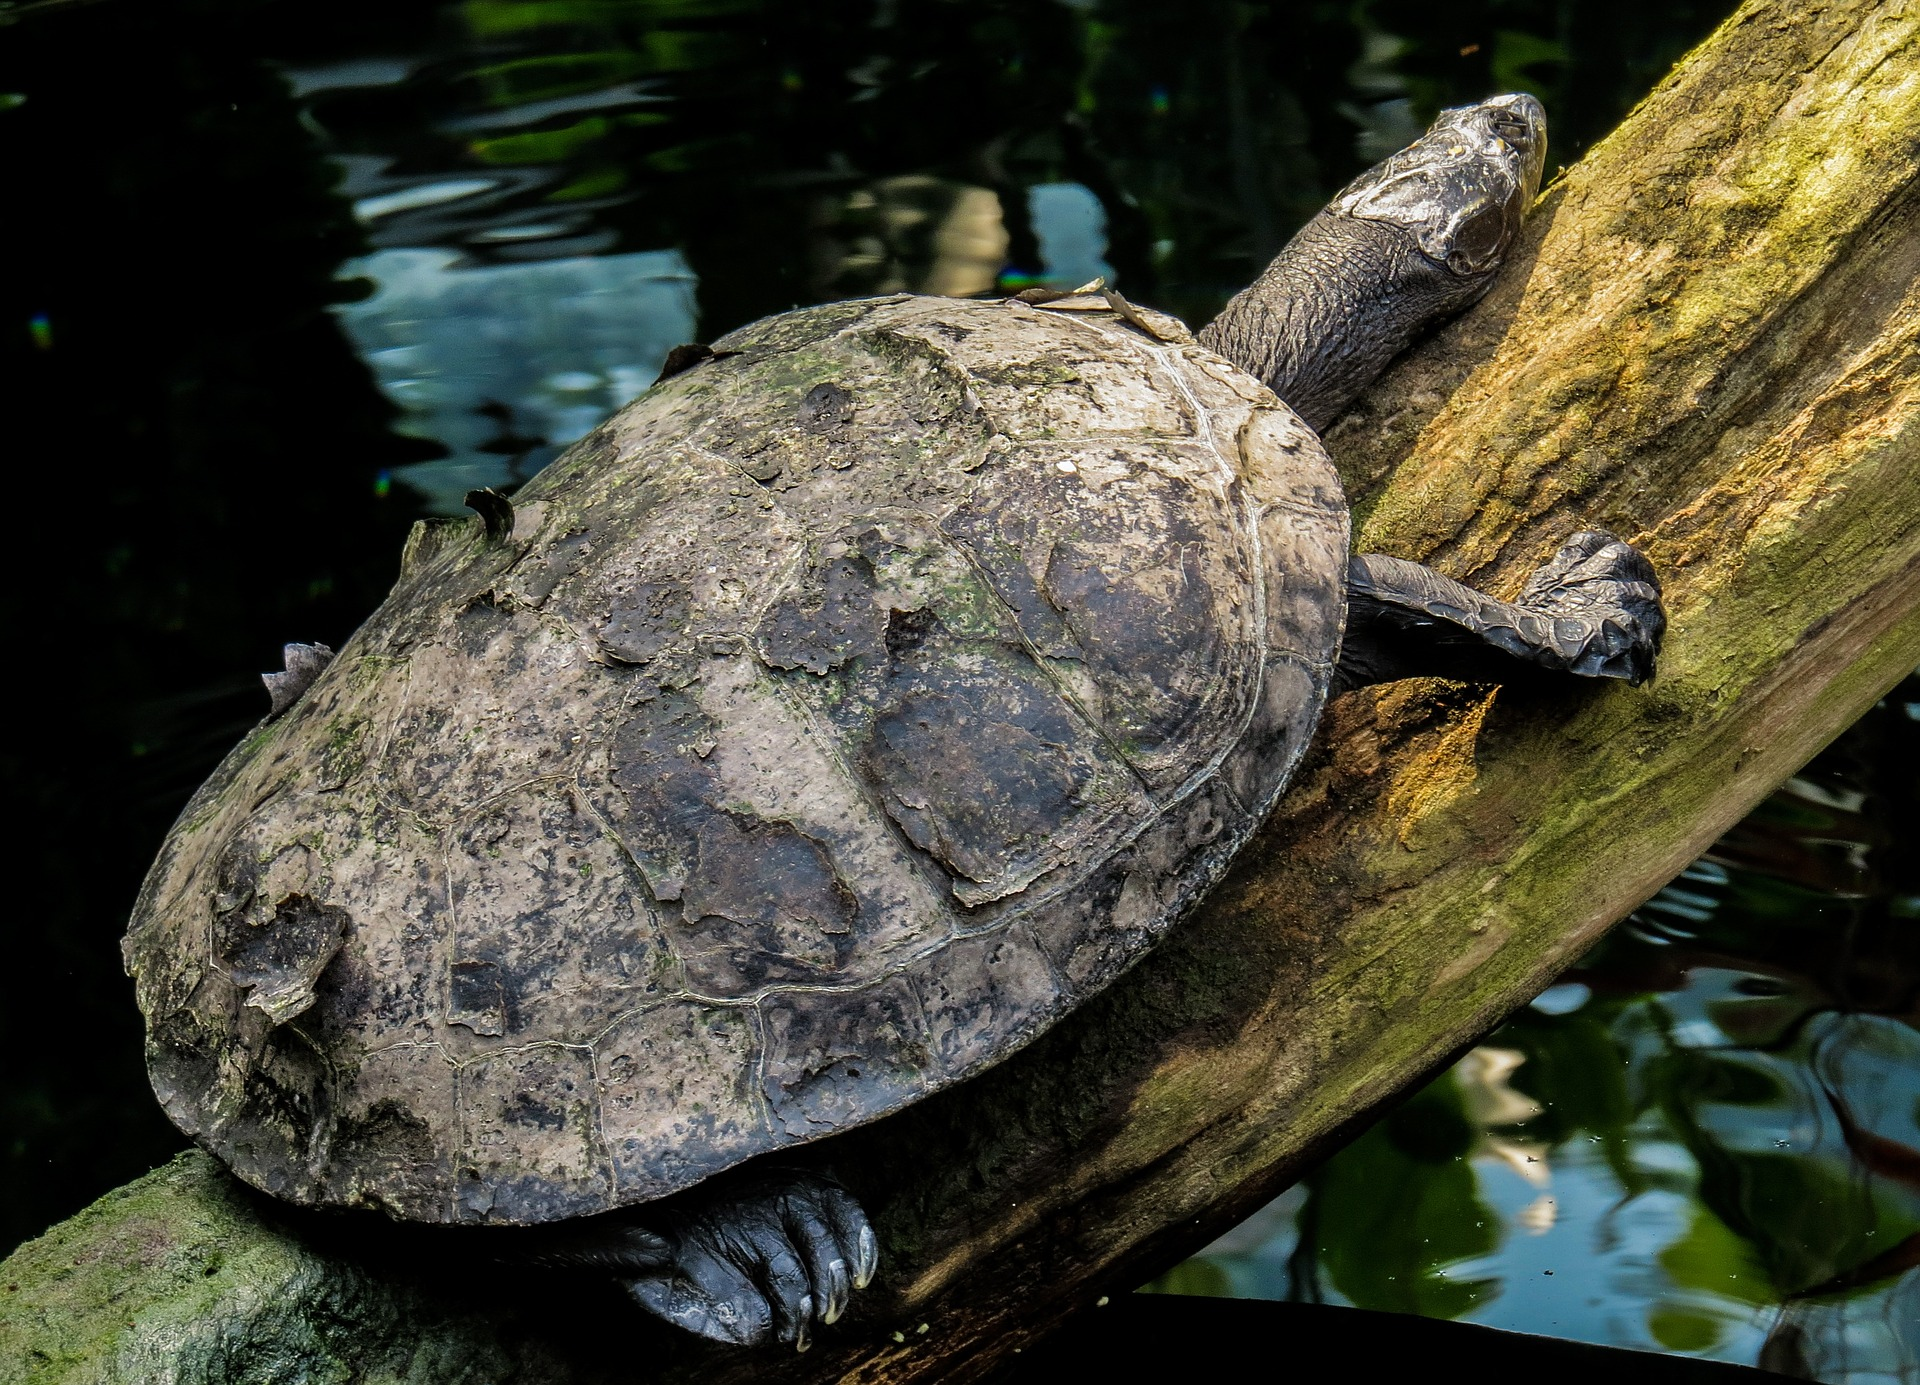 Turtle on the Wood, Animal, Nature, Route, Tortoise, HQ Photo